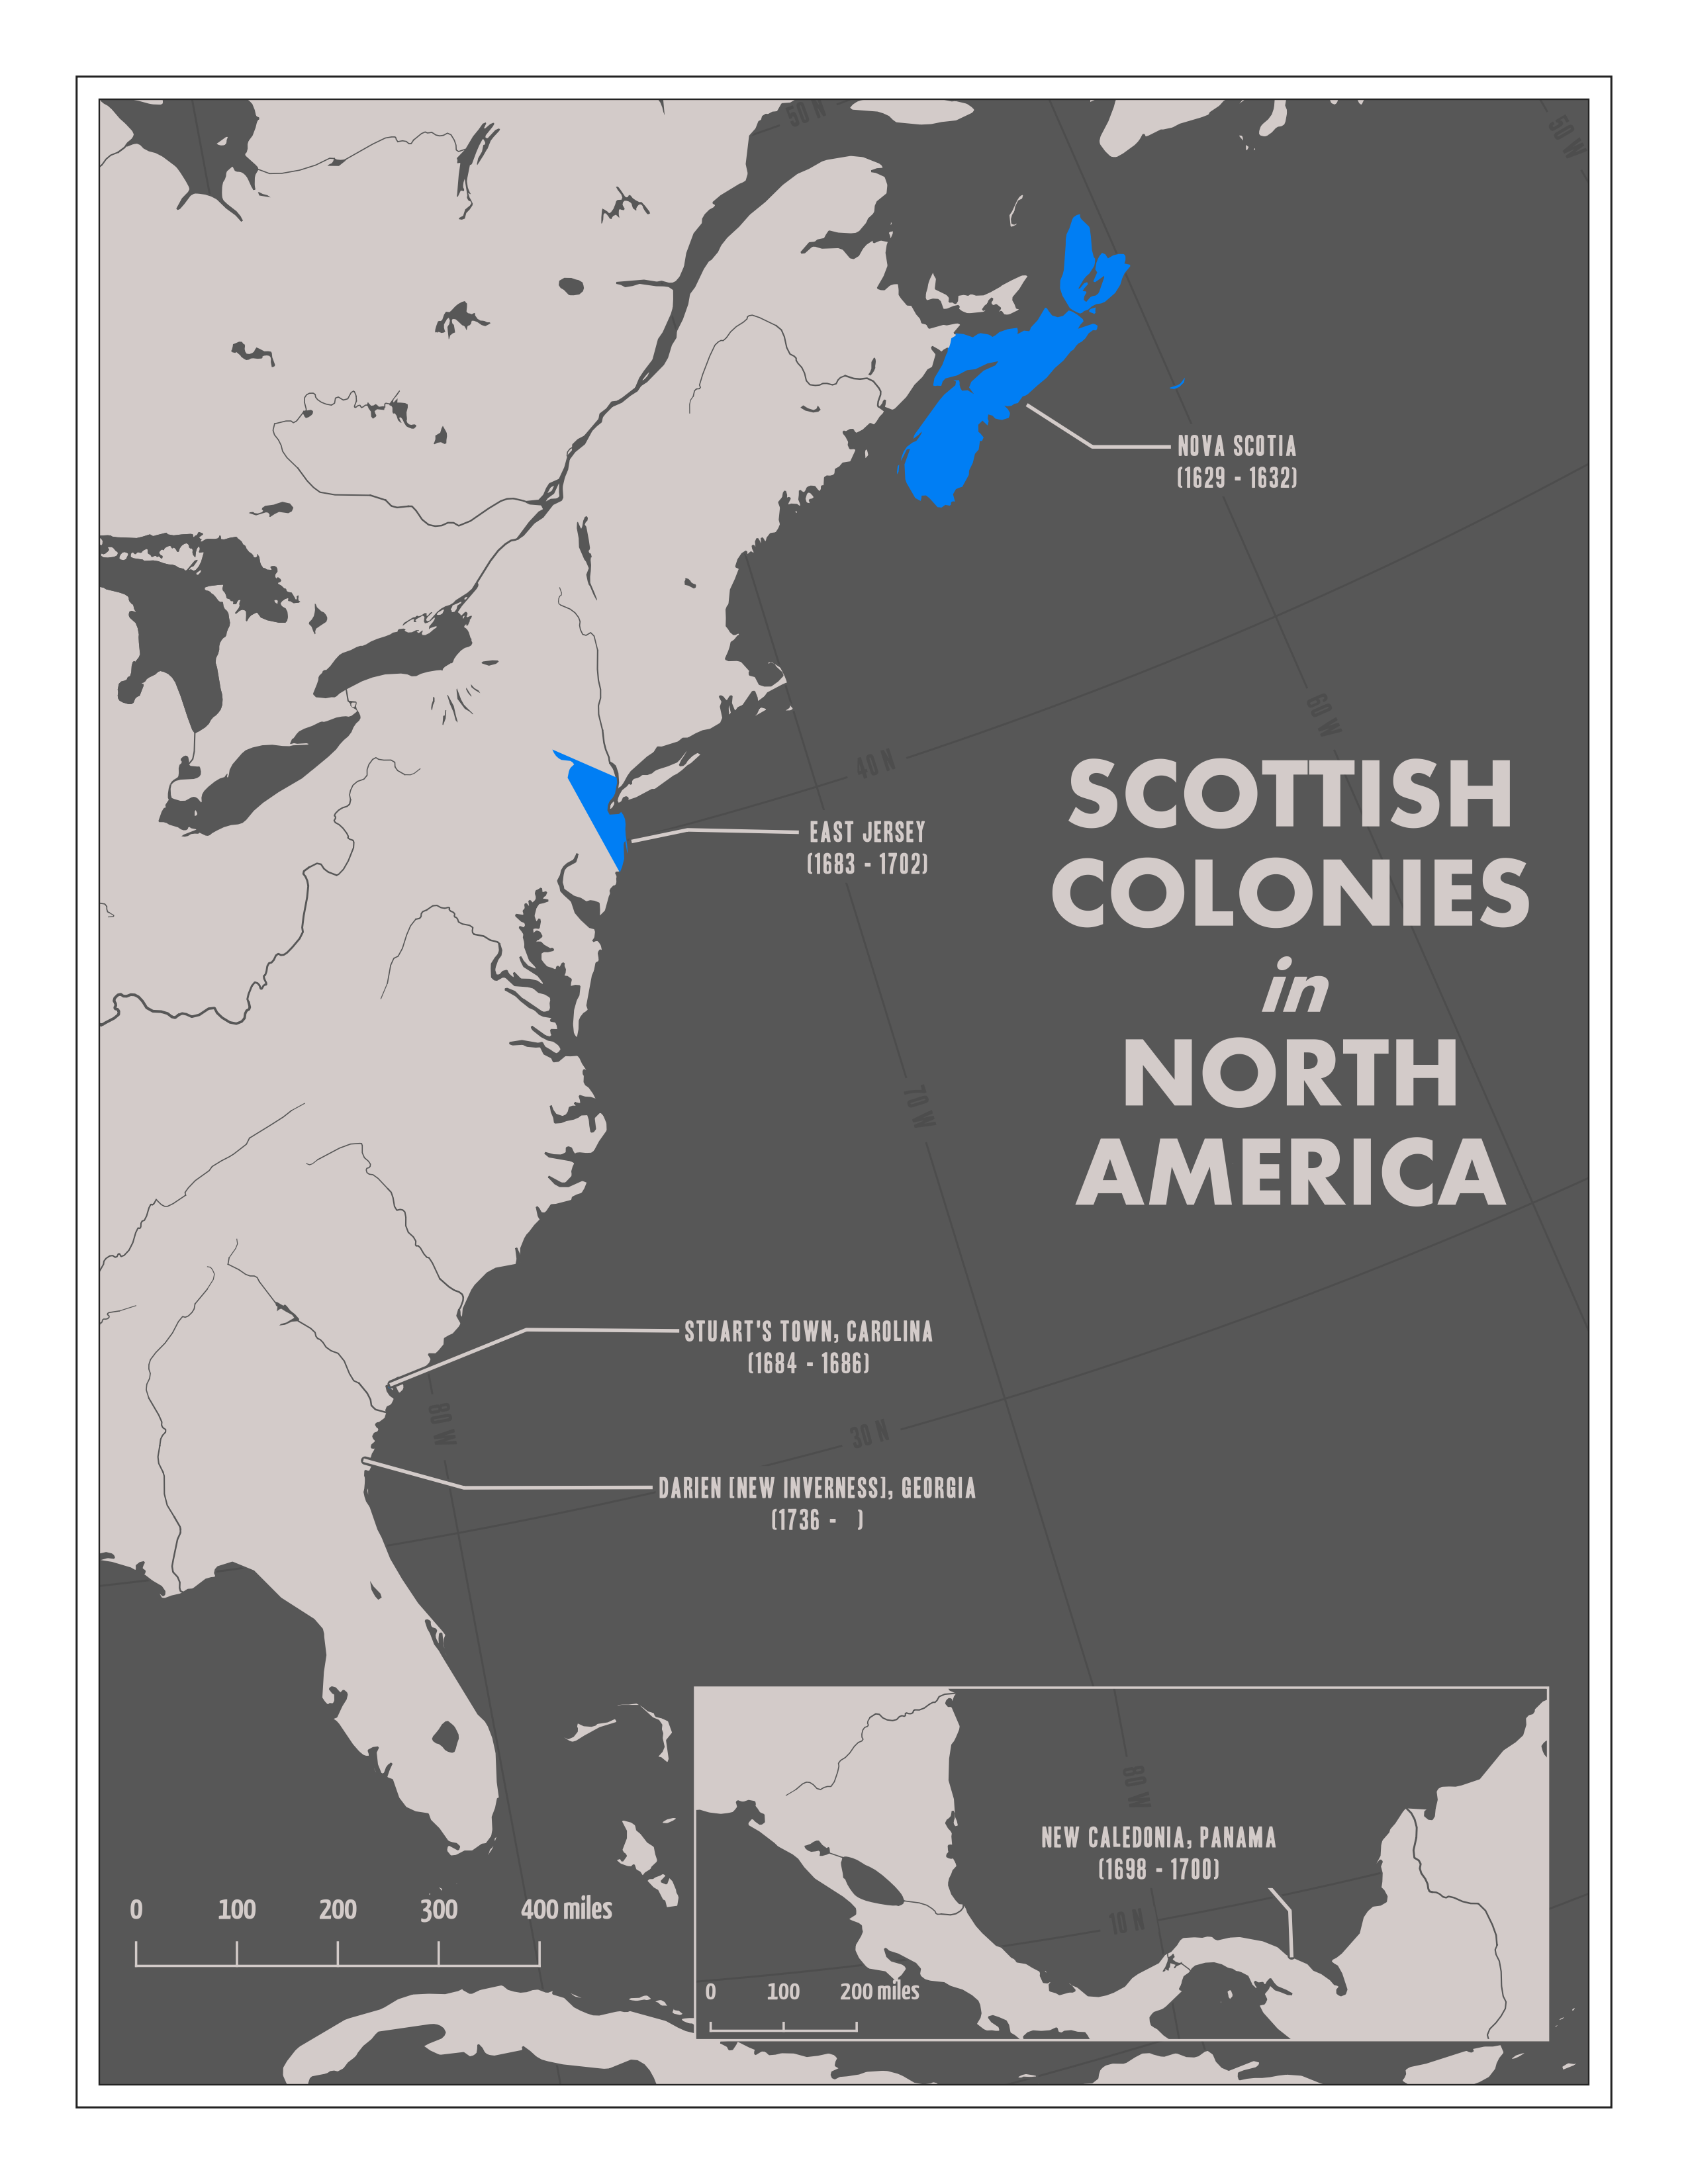 Scottish colonies in north america 592x766 mapporn scottish colonies in north america 592x766 gumiabroncs Image collections